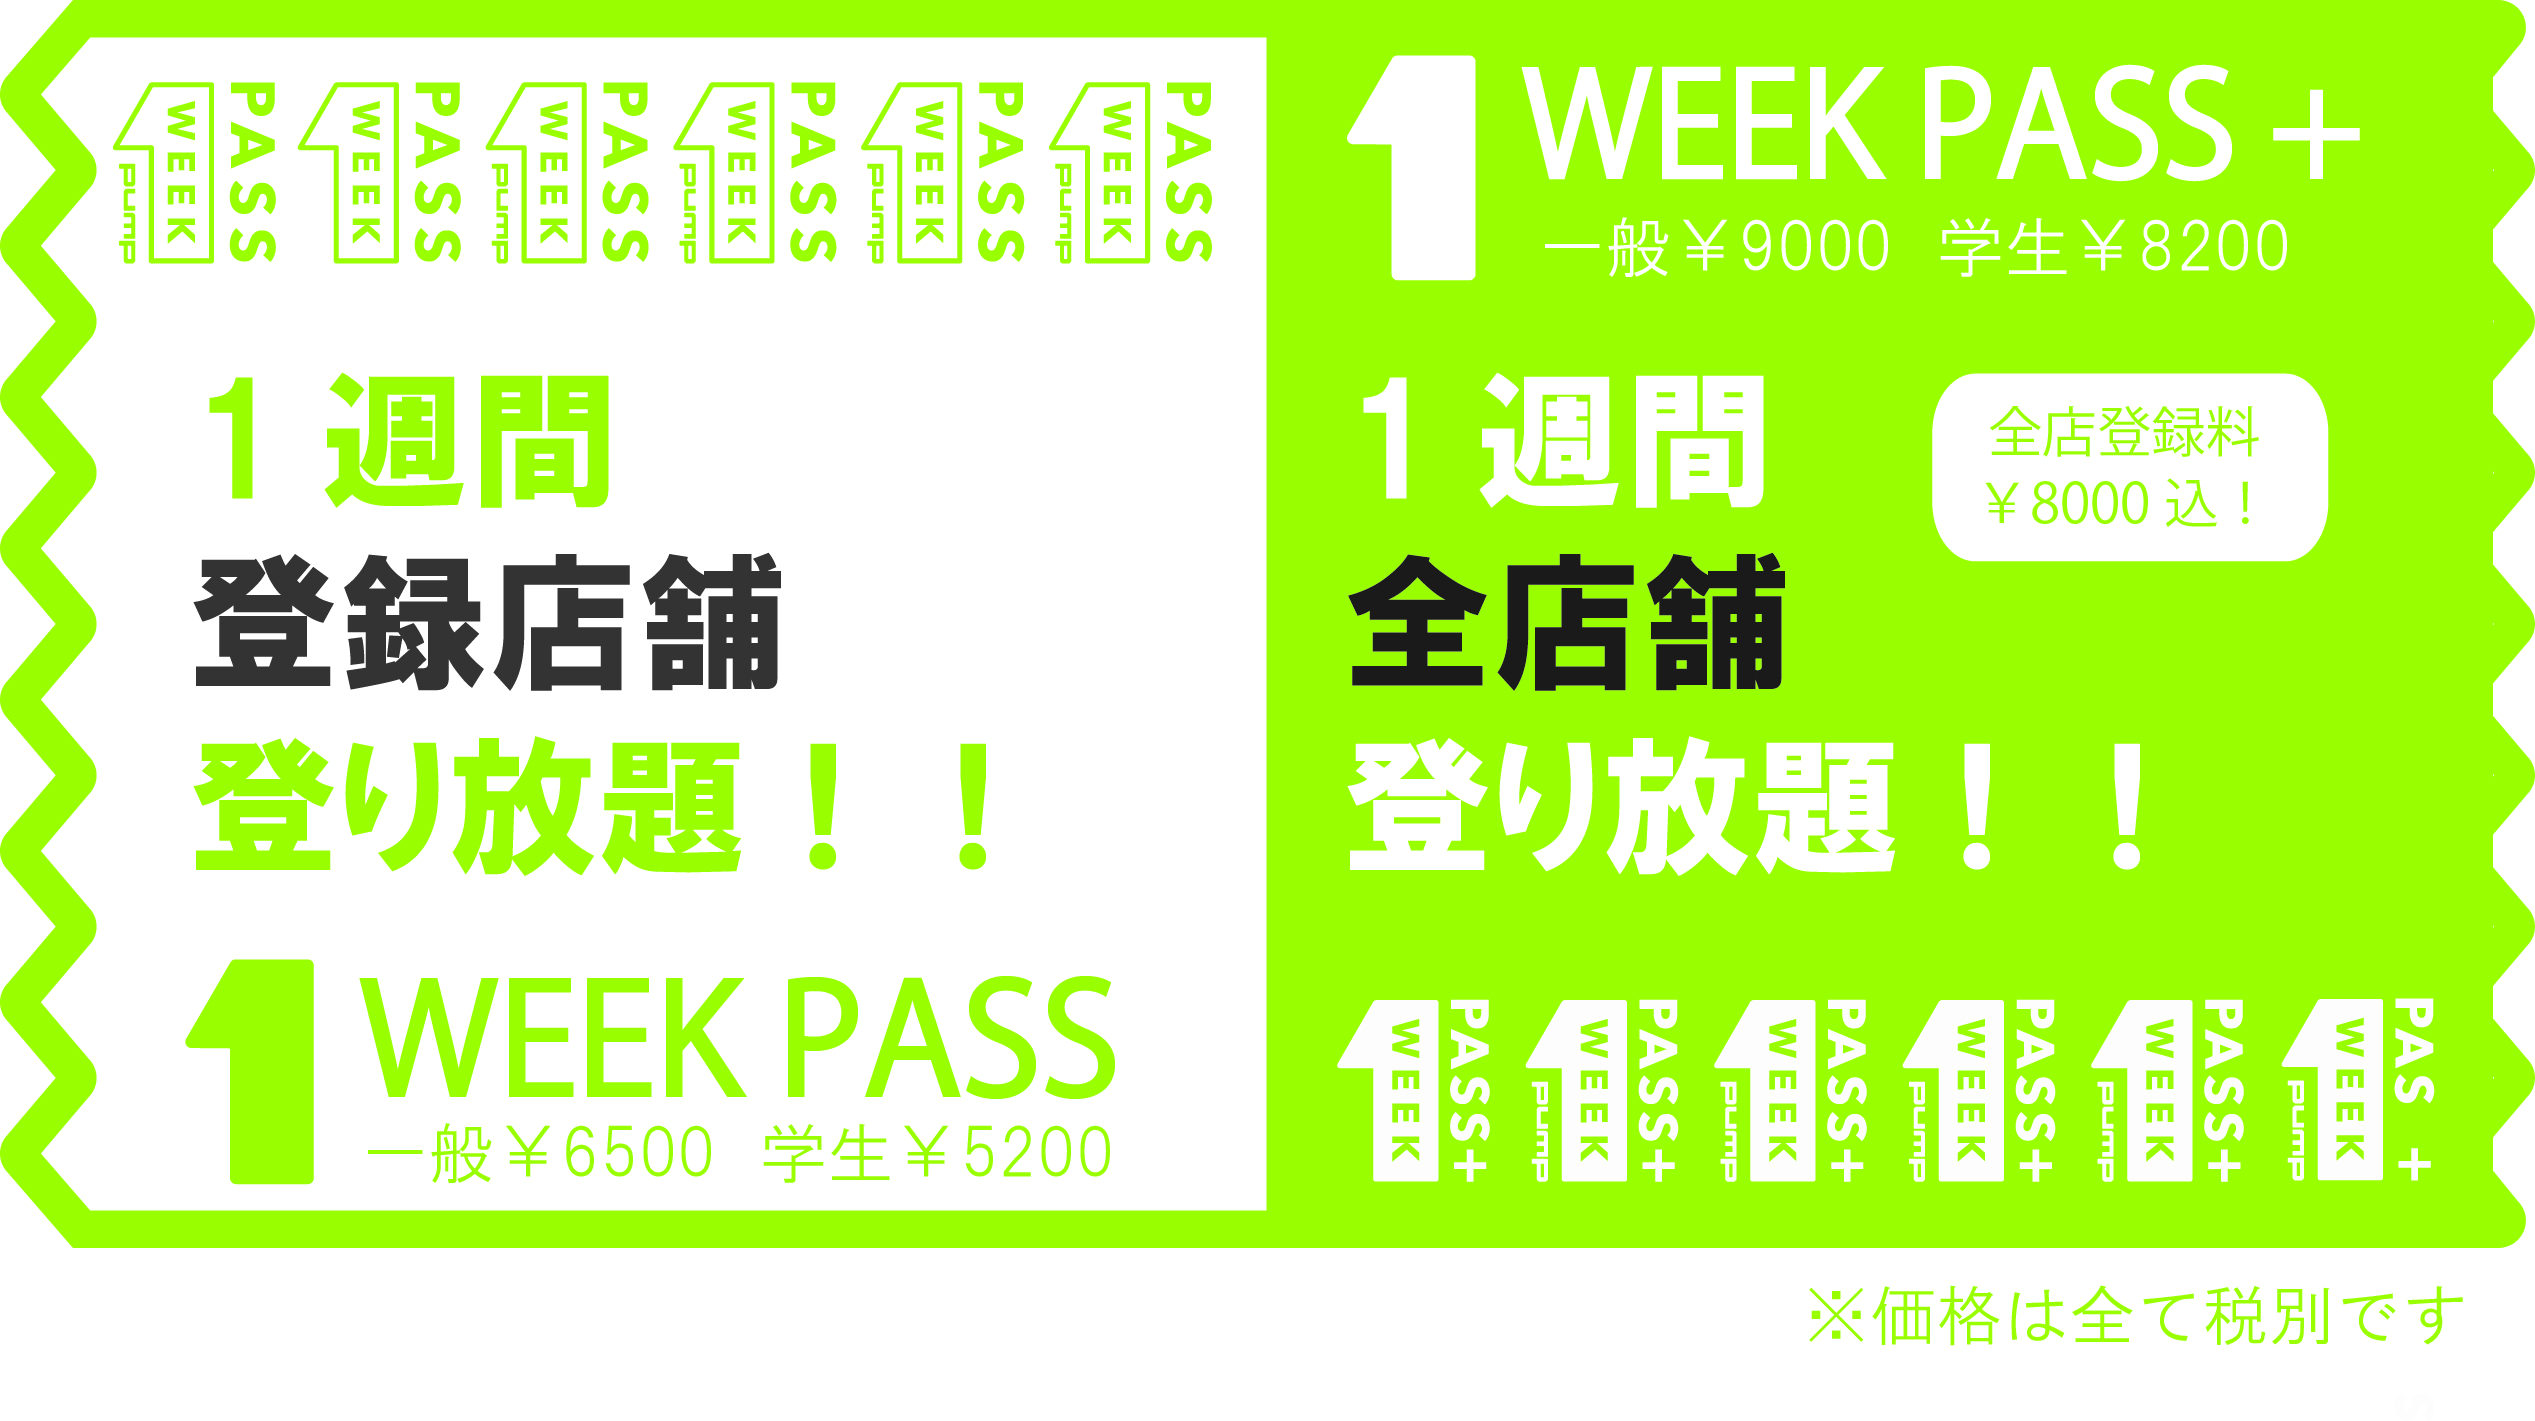 『1 Week Pass・1 Week Pass Plus』発売中